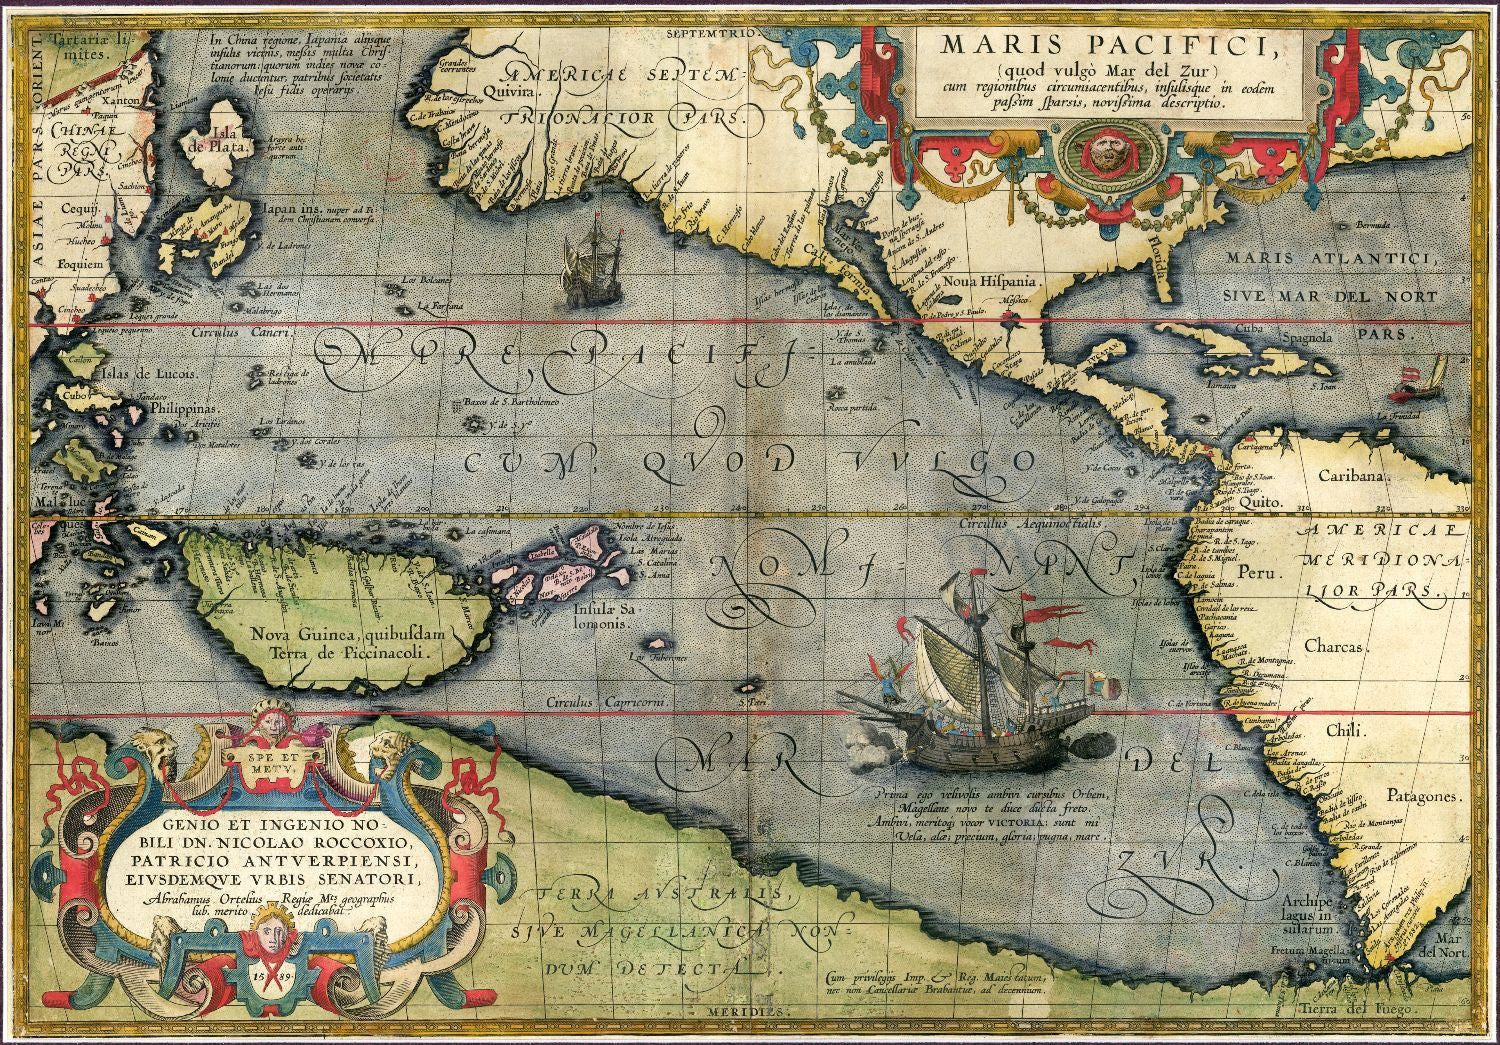 Decorative vintage world map maris pacifici abraham ortelius decorative vintage world map maris pacifici abraham ortelius 1589 canvas prints gumiabroncs Images